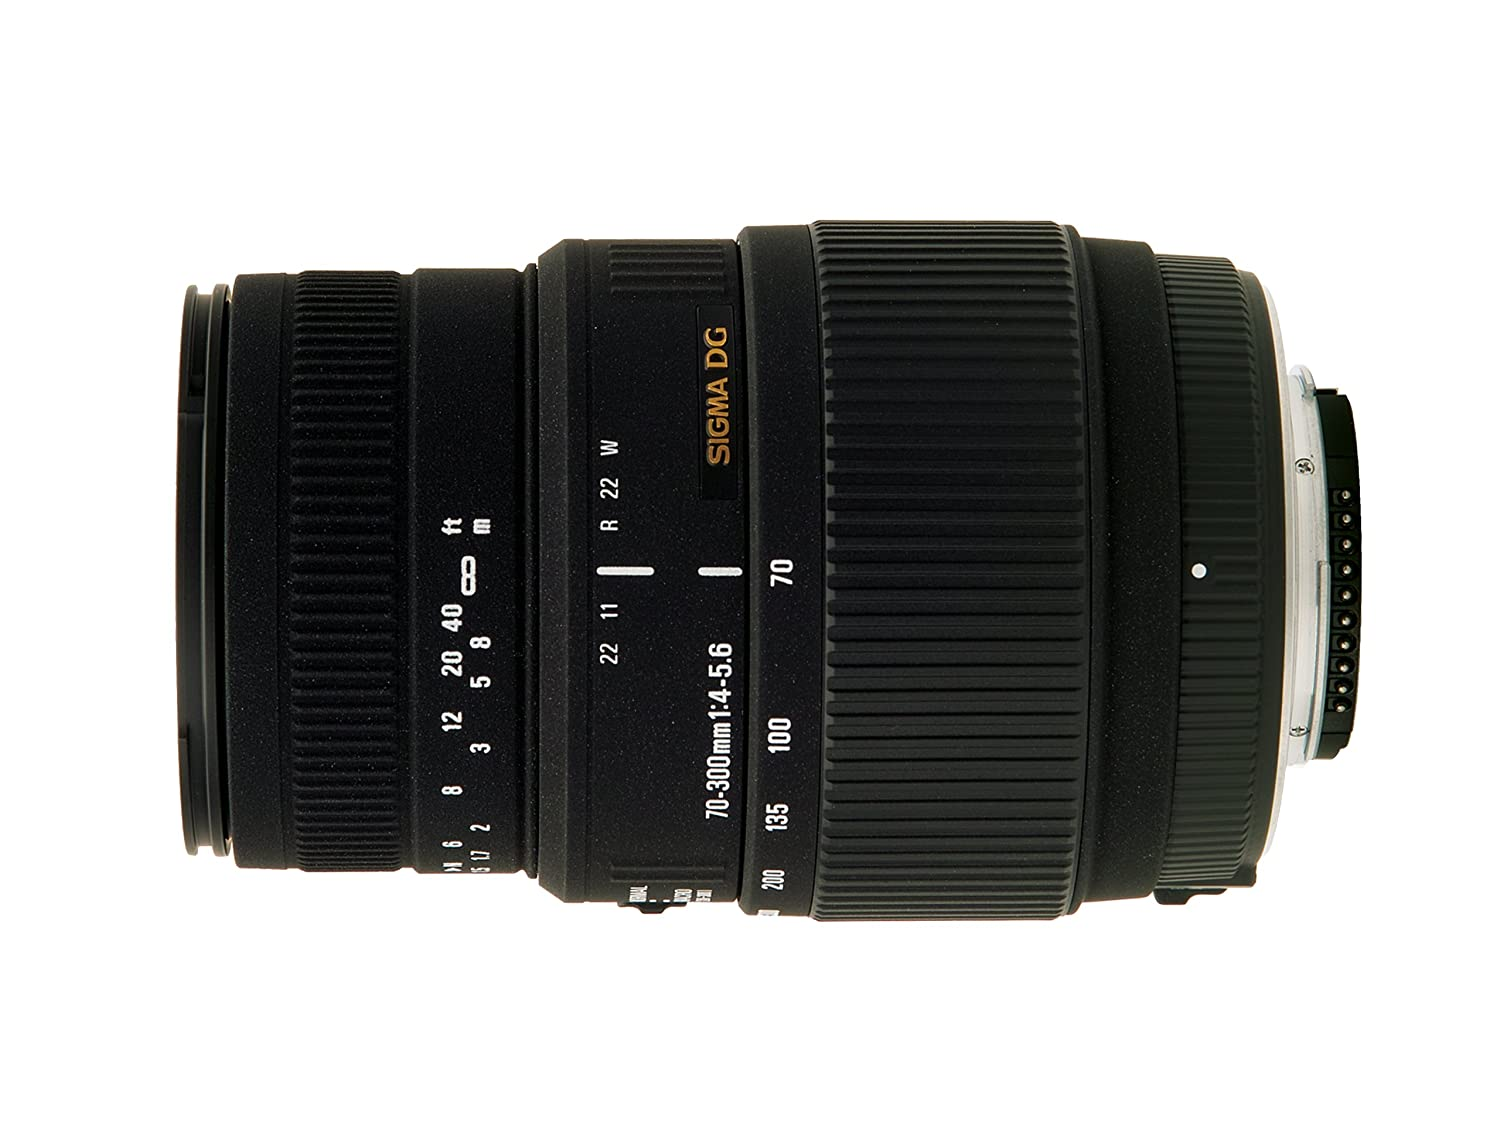 Sigma 70-300mm f/4-5.6 SLD DG Macro Lens with built in motor for Nikon Digital SLR Cameras 5A9306 B0086EN6RG